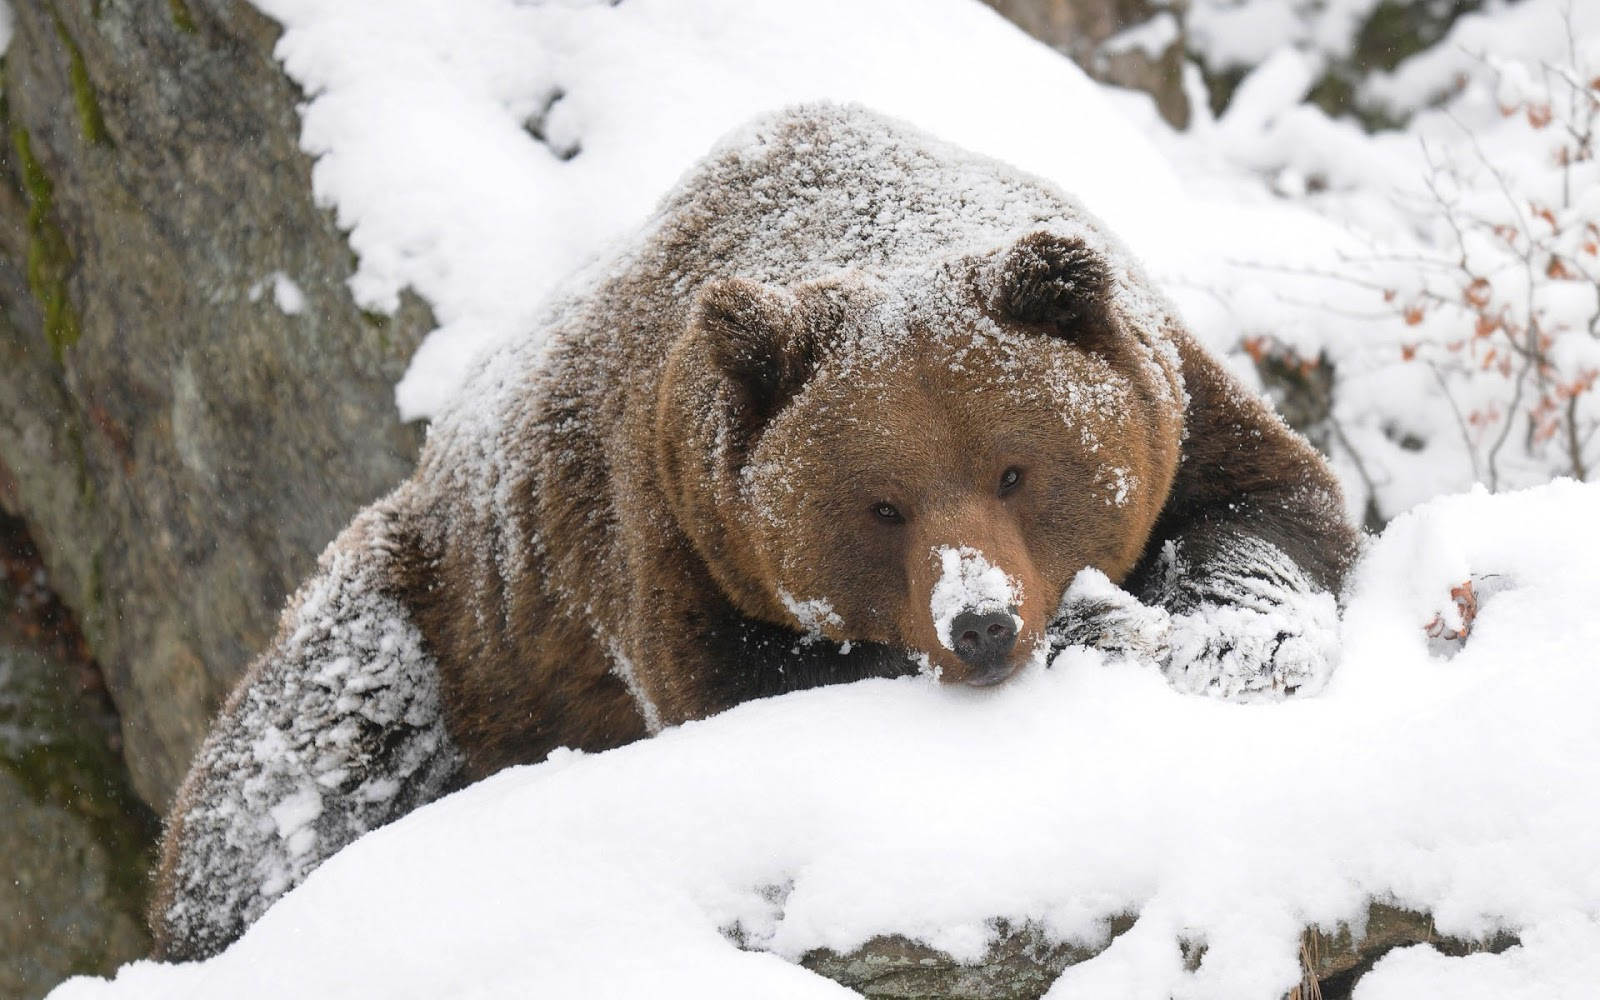 winter-bear-Beautiful-of-a-grizzly-bear-covered-with-some-snow-at-wallpaper-wp4210760